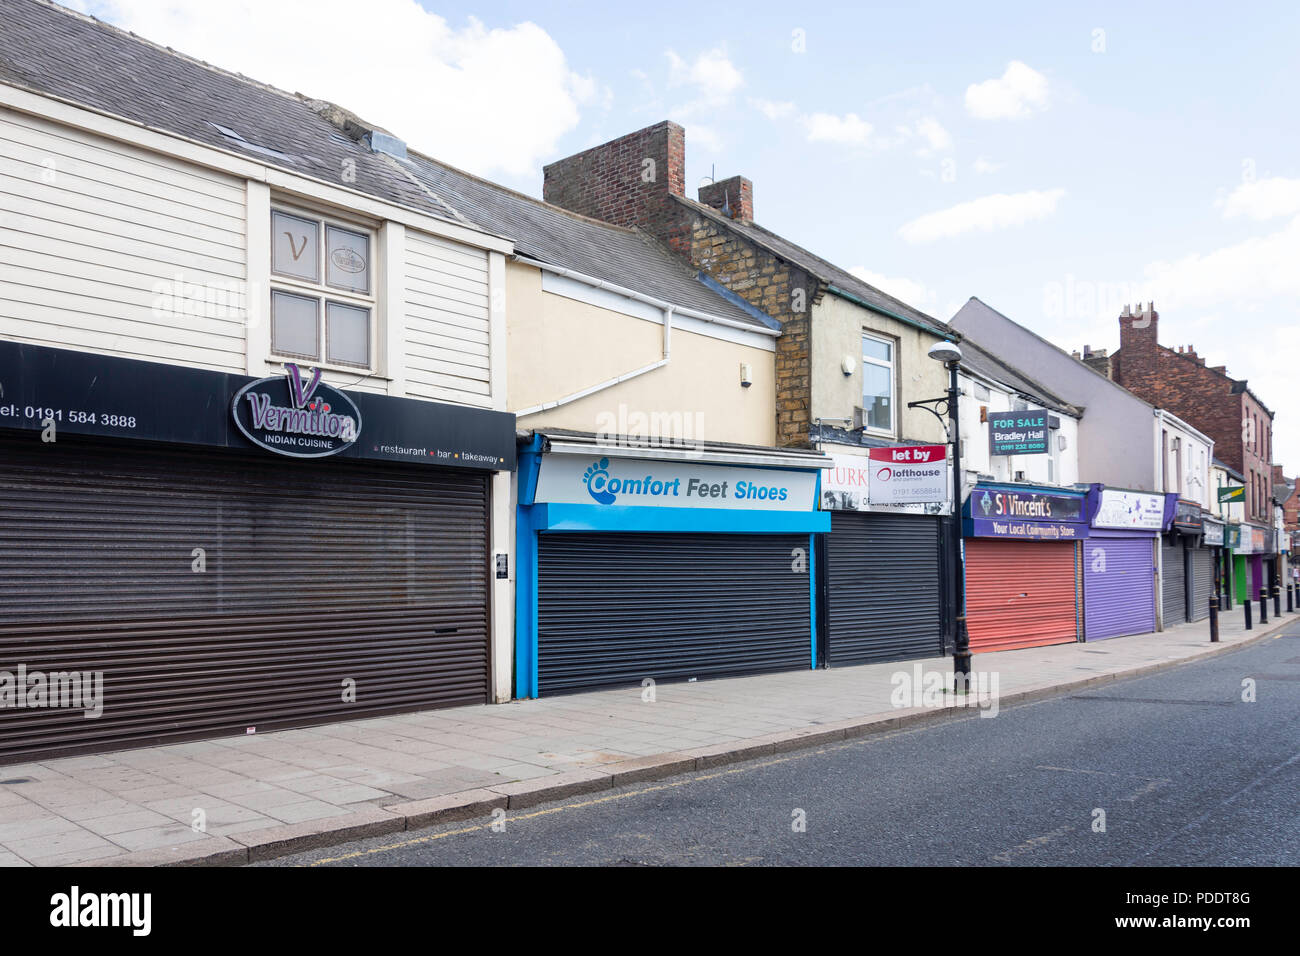 Shuttered shopfronts, Newbottle Street, Houghton-le-Spring, Tyne and Wear, England, United Kingdom - Stock Image